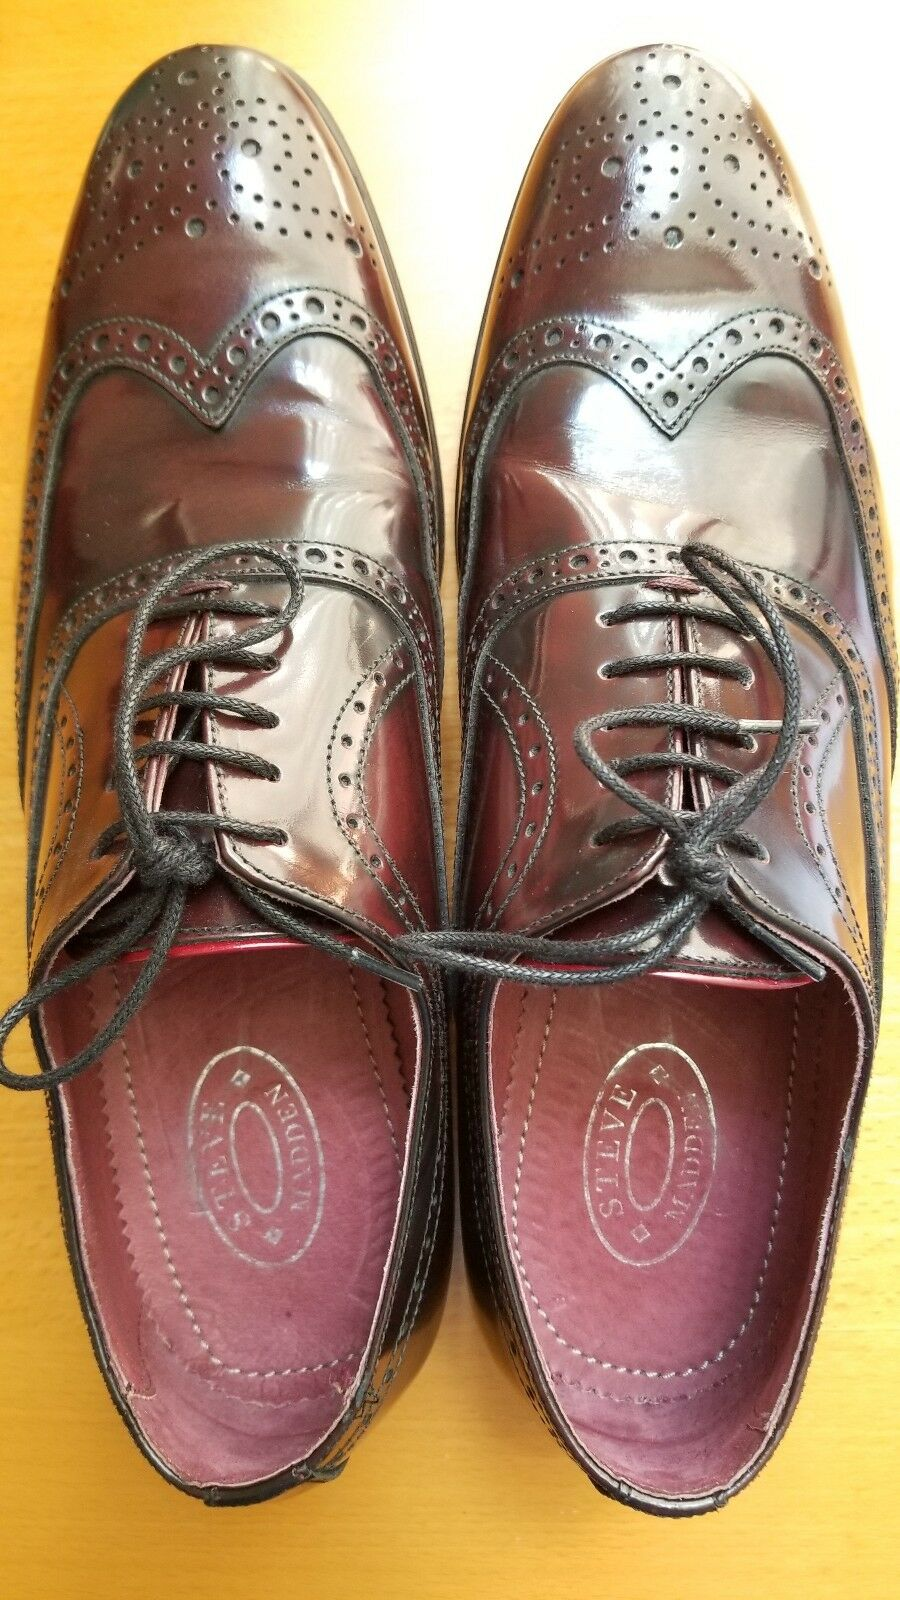 Steve Madden RHOMBUS Mens Oxford Loafers shoes Burgundy Size 8